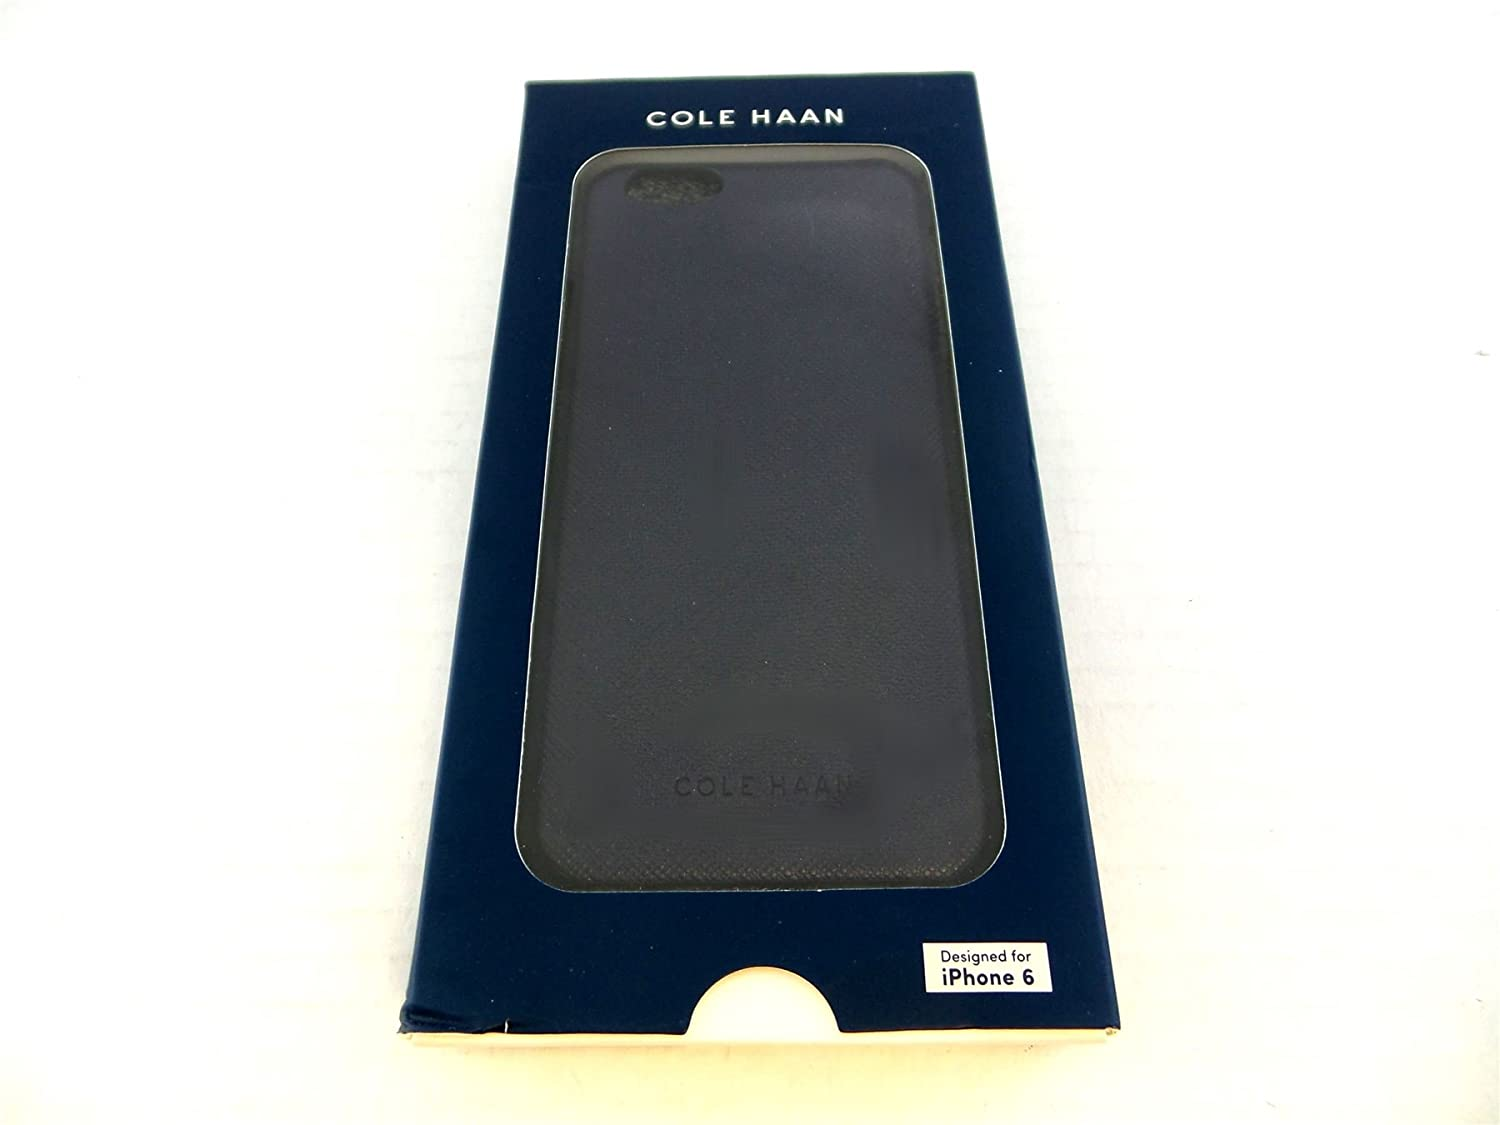 Cole Haan Cross Hatch Marine Blue Case for Apple iPhone 6 CHRM71018-MBL